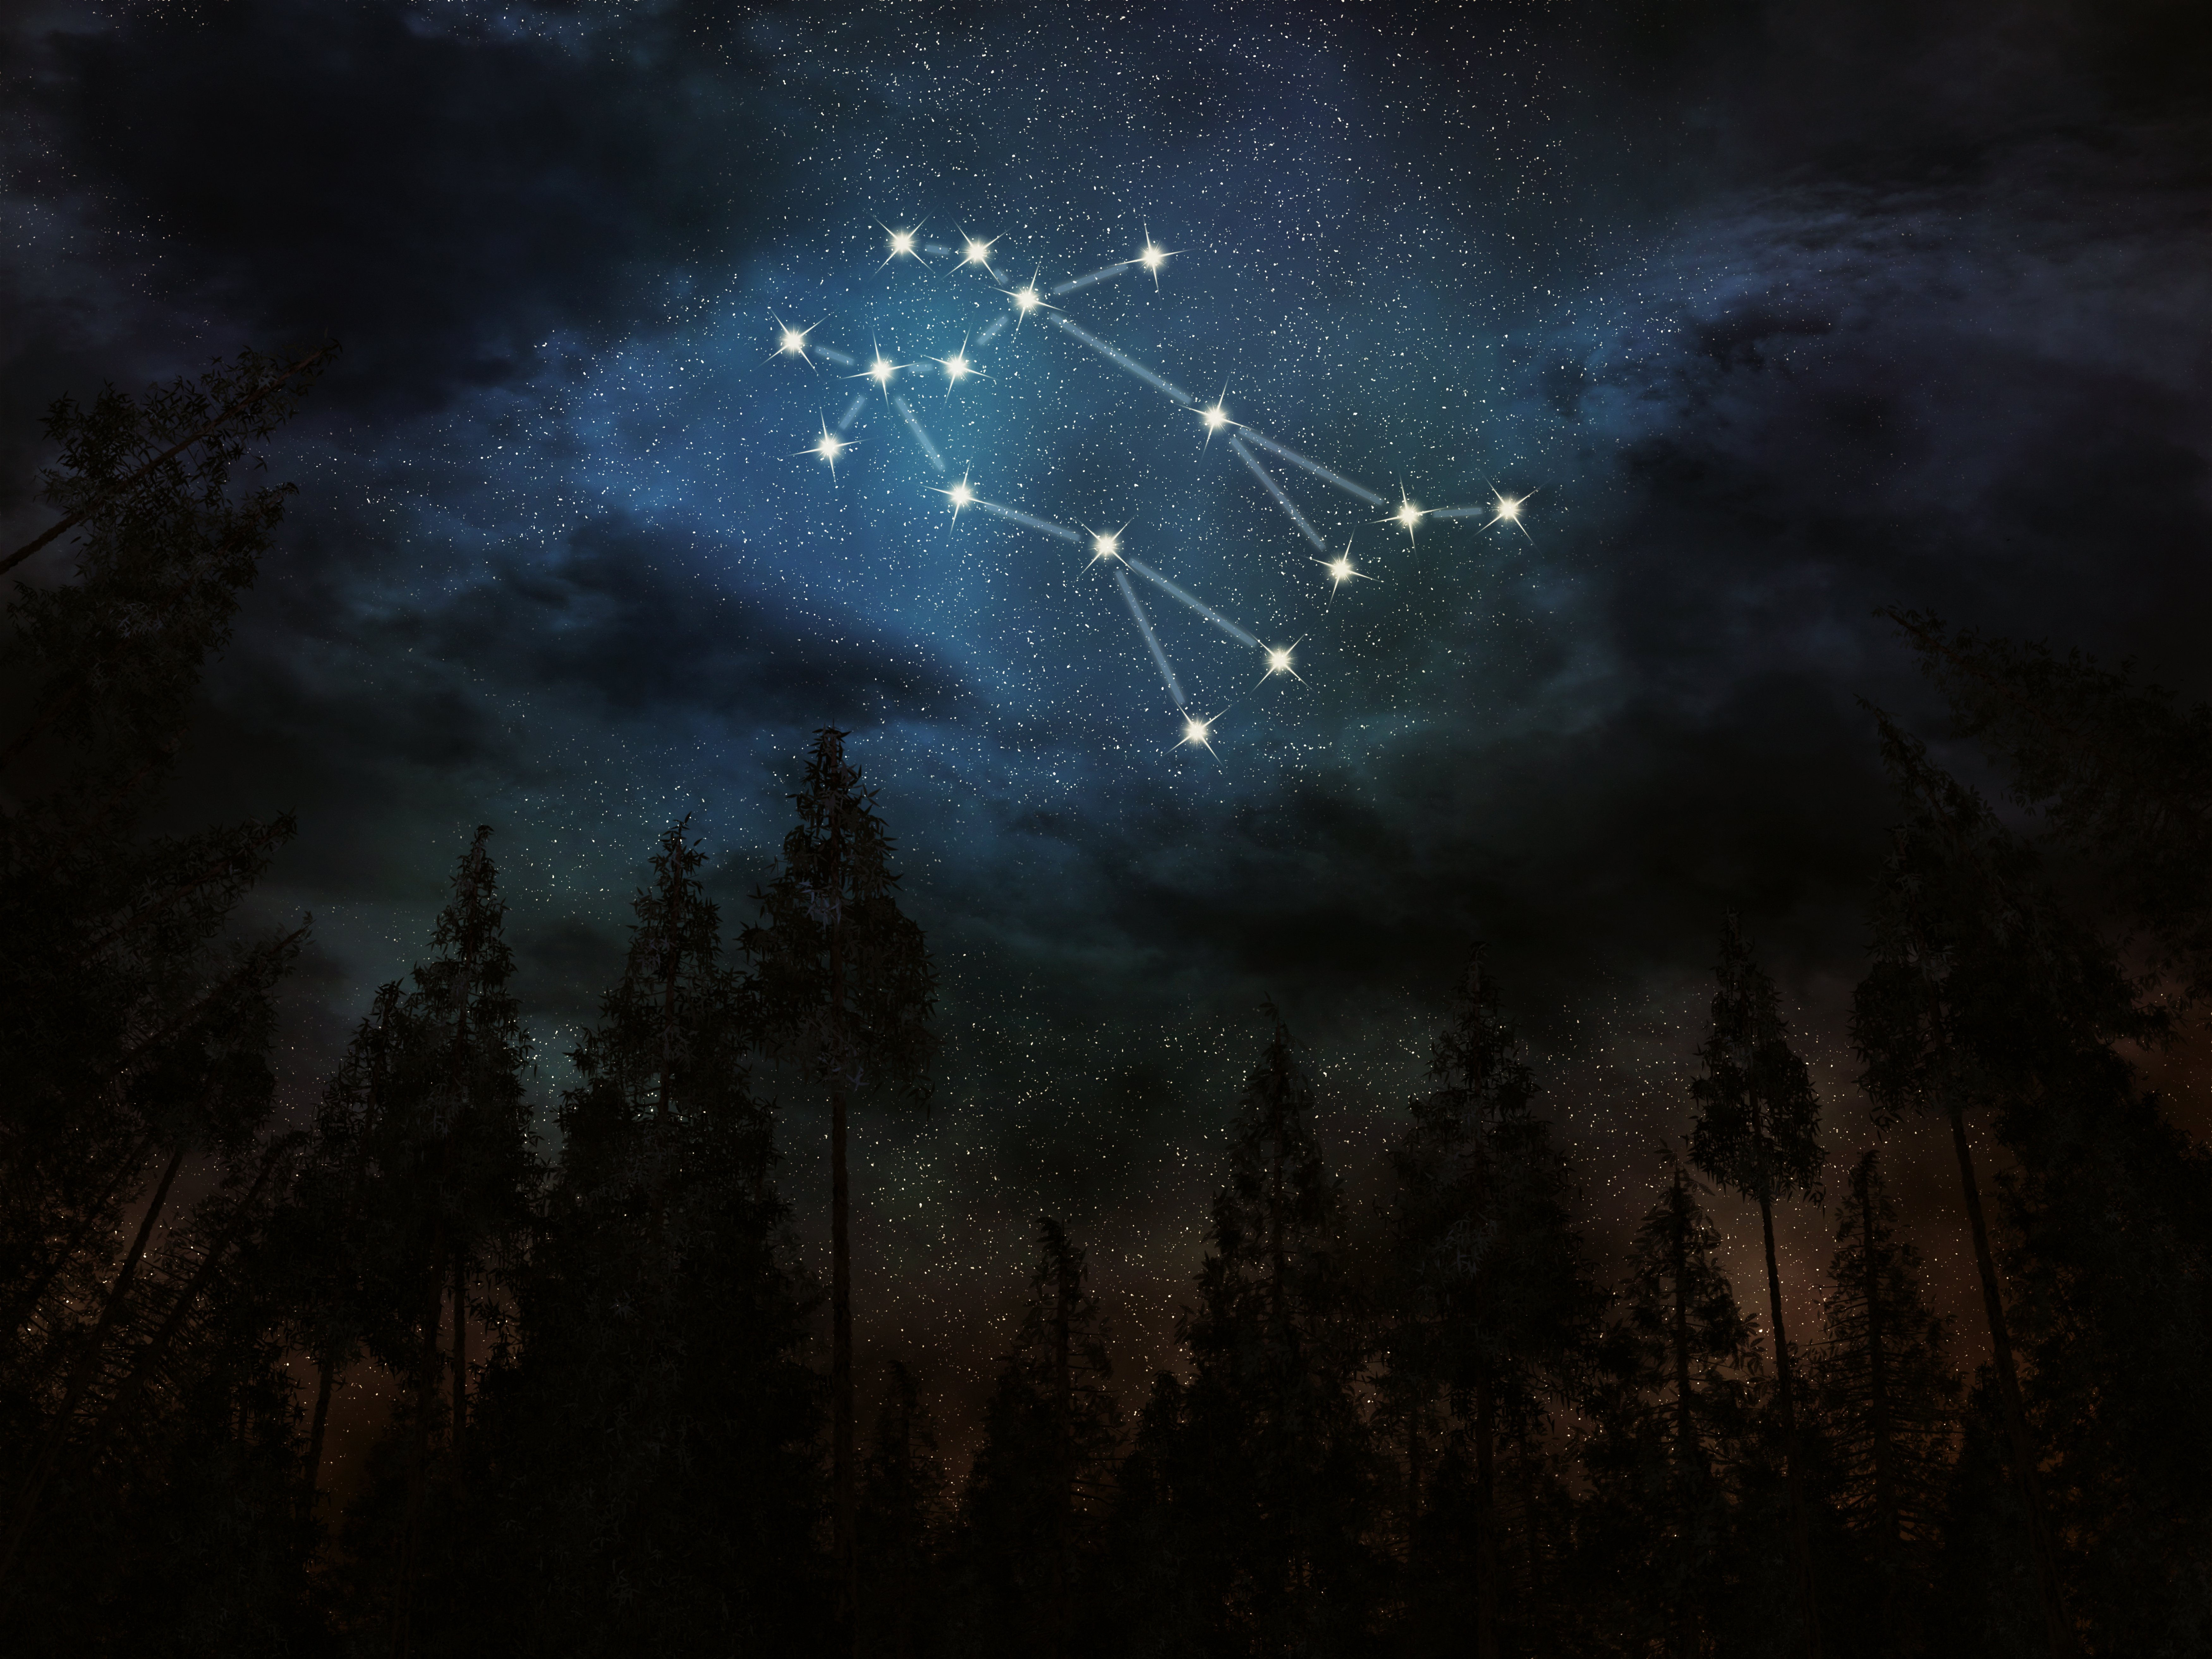 An illustration of the Gemini constellation in the night sky | Source: Shutterstock